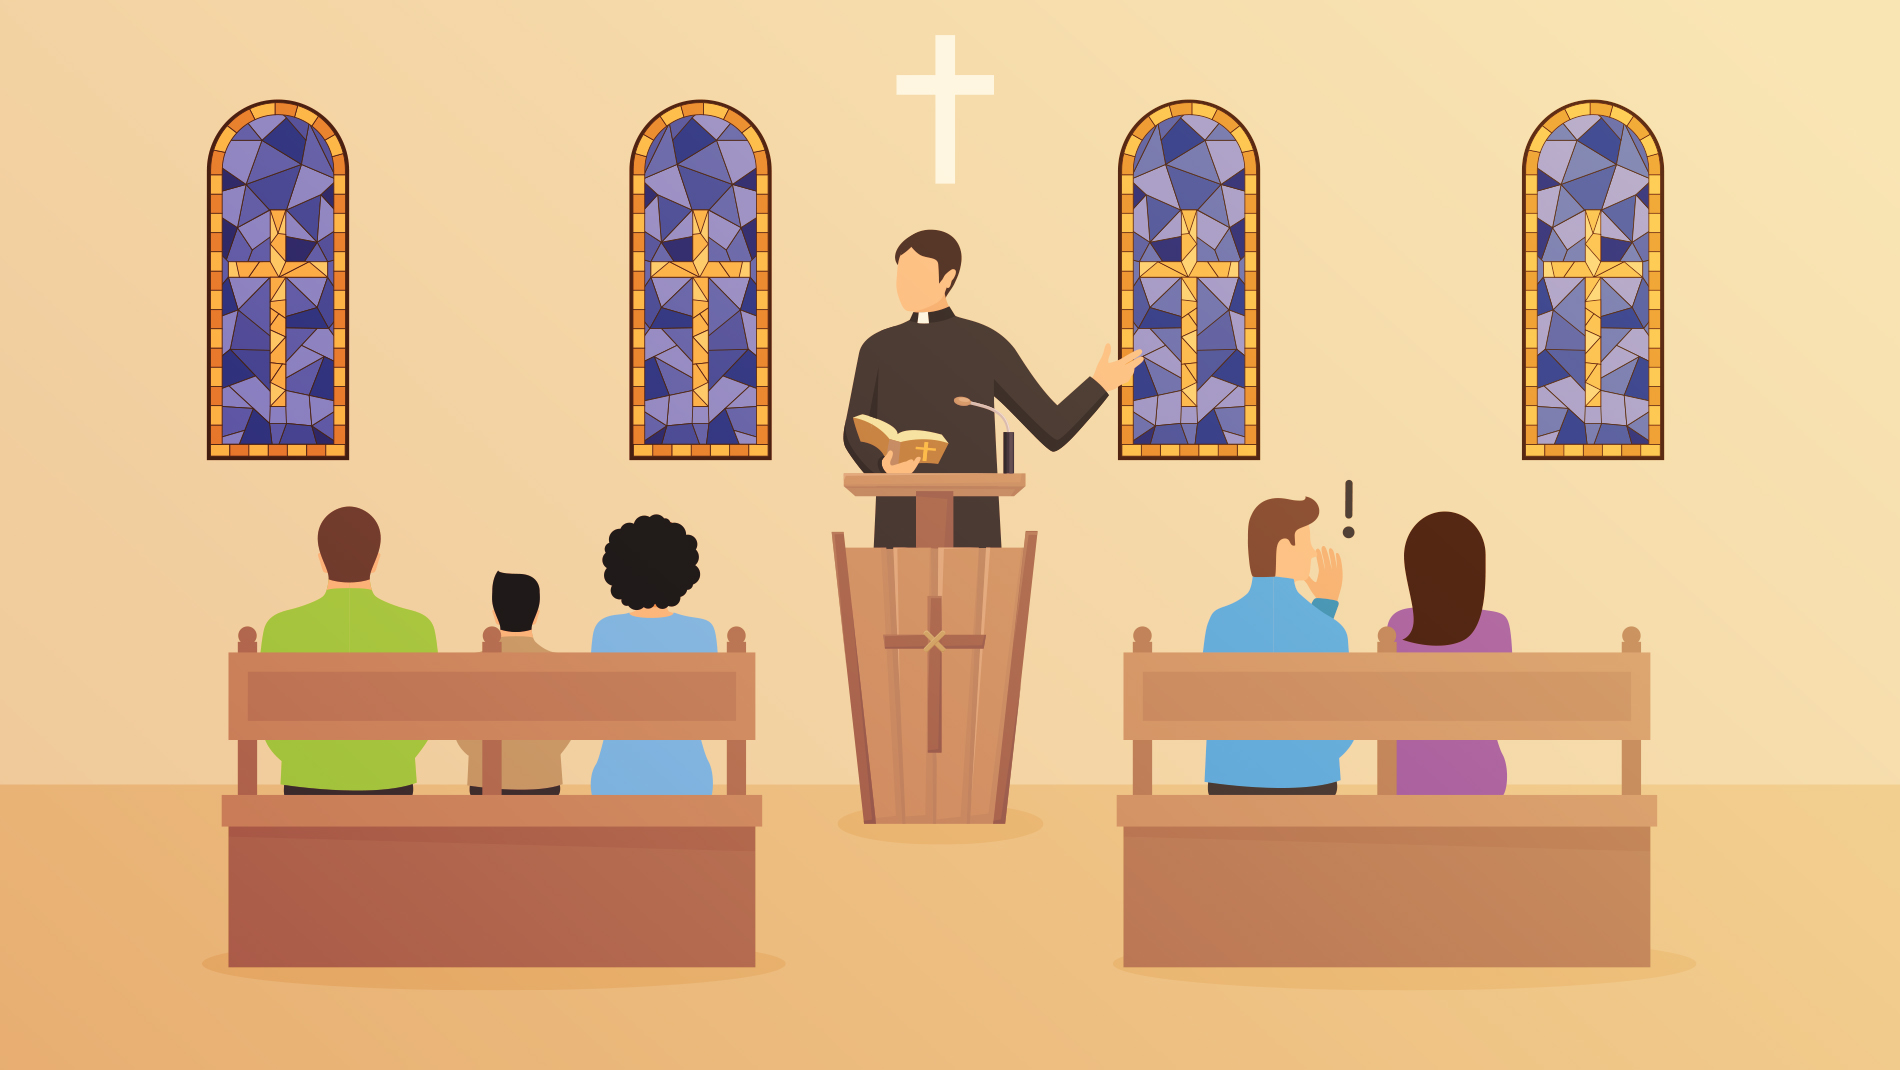 Image of a pastor preaching at the pulpit with people sitting in pews